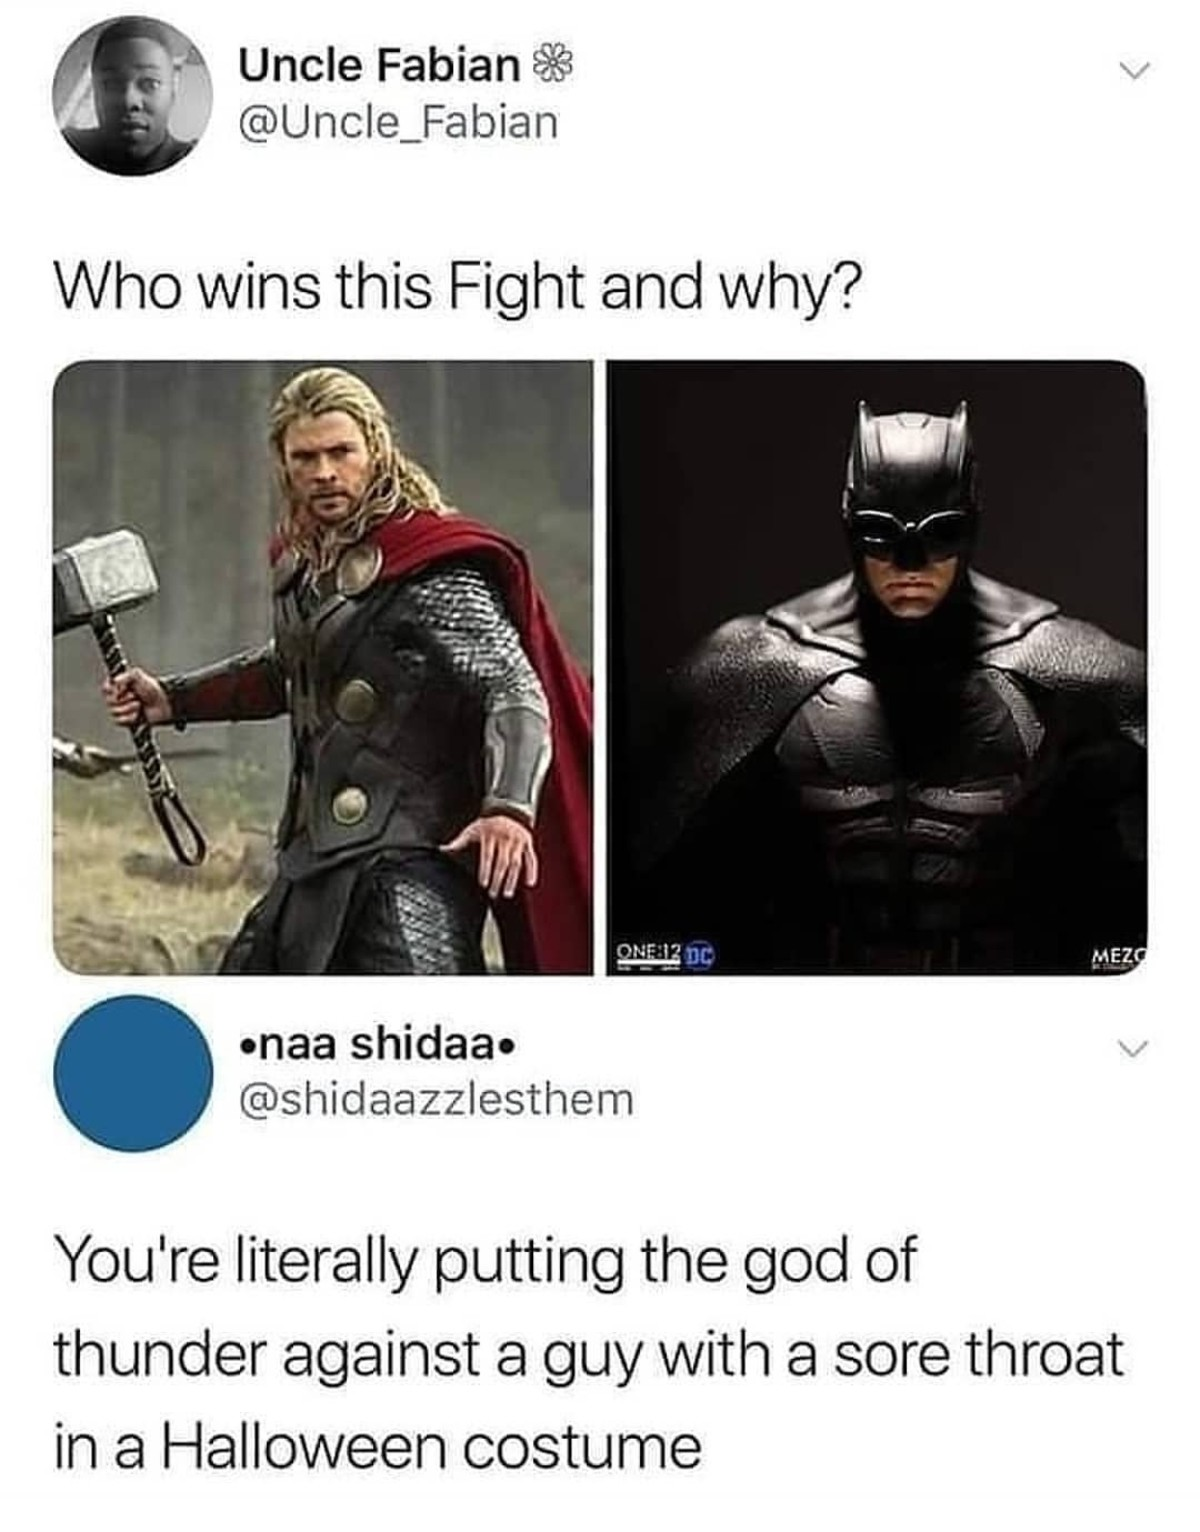 Comic Battles.. .. Well what is thor weakness? I meant in comic, any story from the movie is stupid. Batman did manage to collect kryptonite to manage superman, so i guess he coul